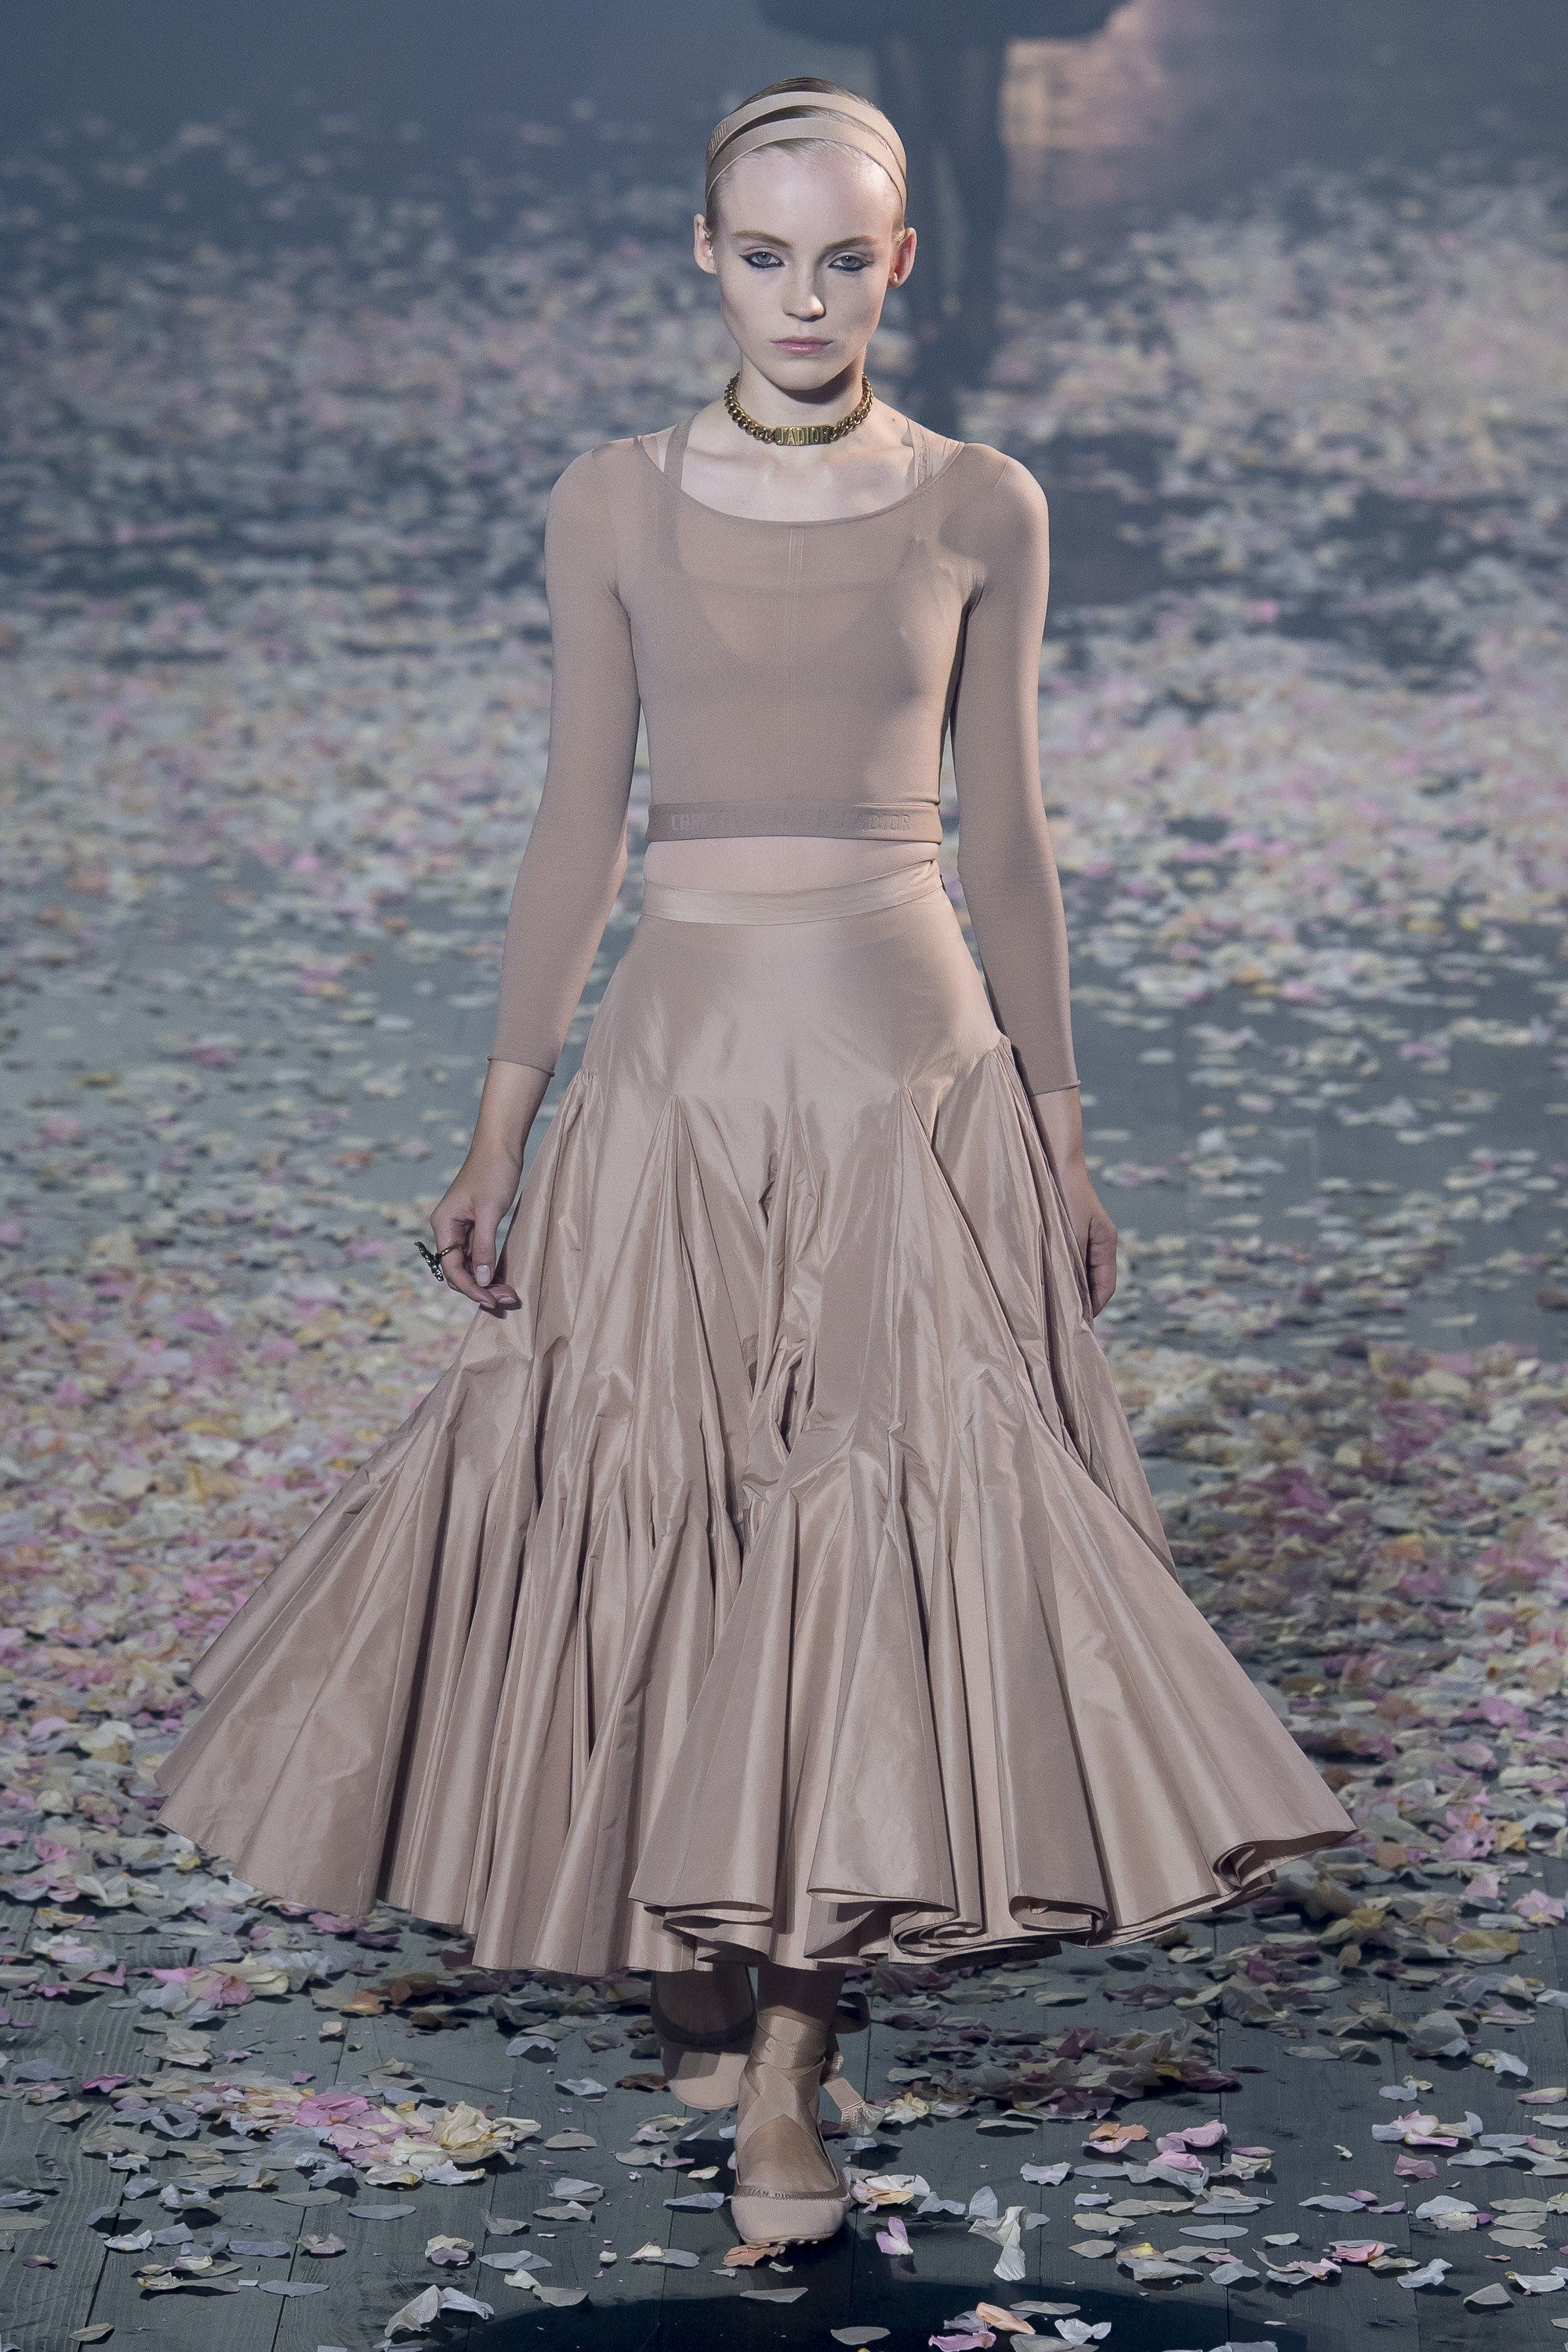 6962fda92c4b49 Christian Dior Spring 2019 Ready-to-Wear Collection - Monochrome soft  color. A simple fairytale ballerina vibe.